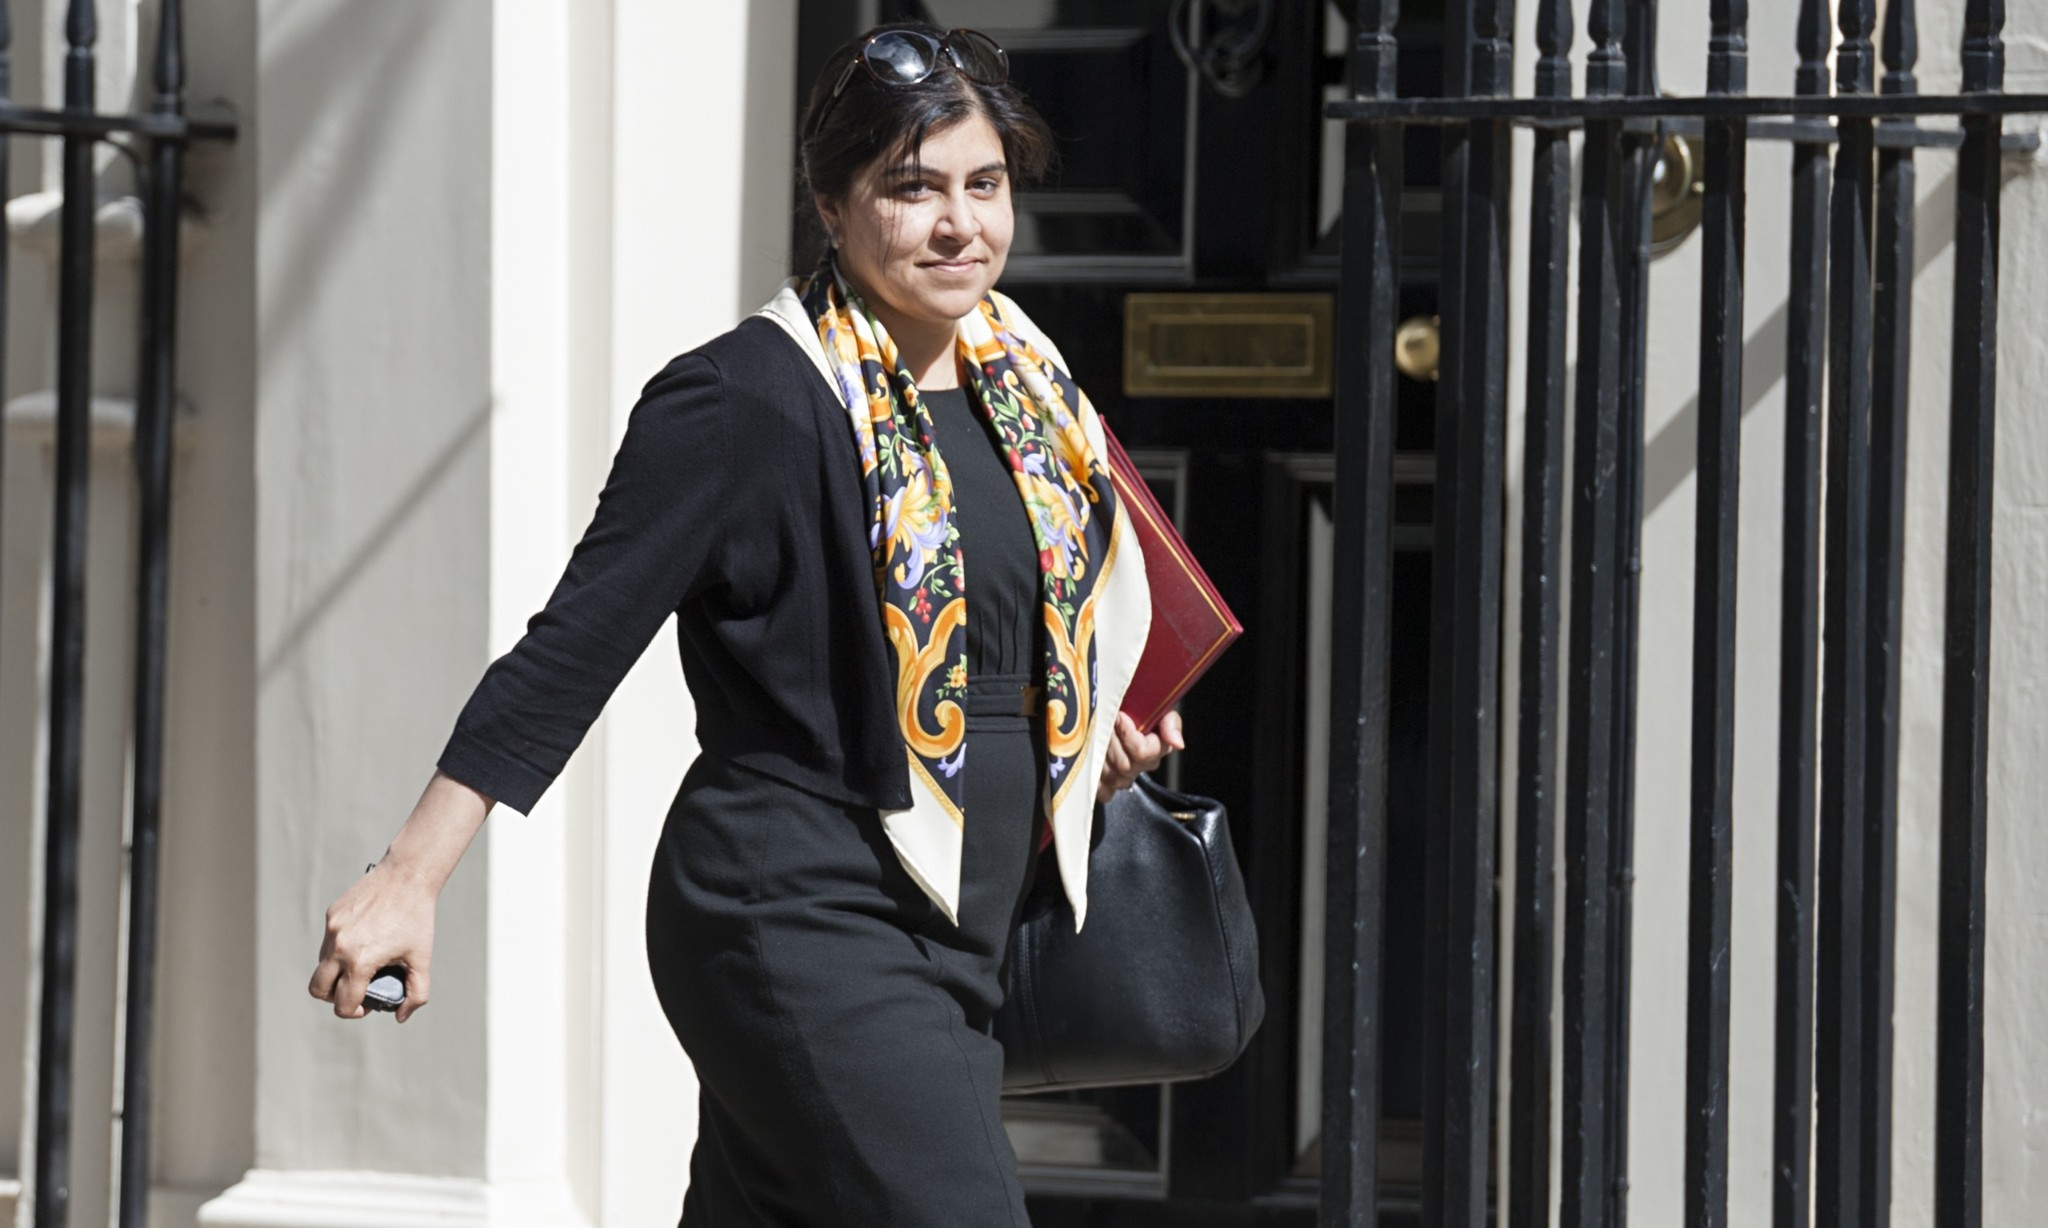 Lady Warsi resigns over UK's 'morally indefensible' stance on Gaza